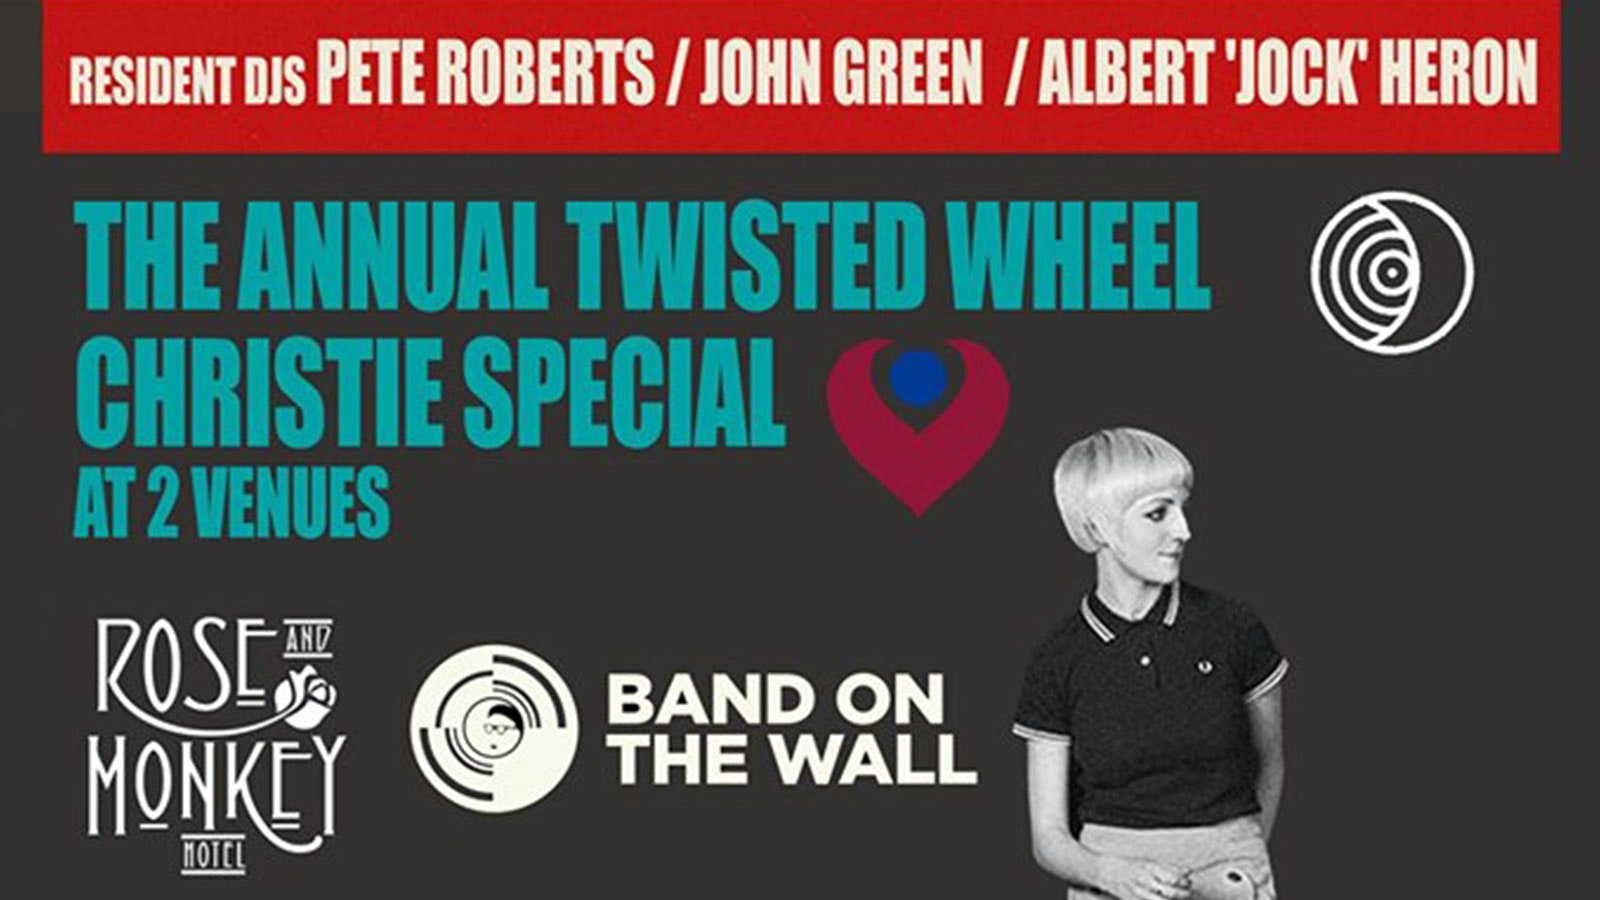 The Twisted Wheel Club – 2 Venue Christie Special